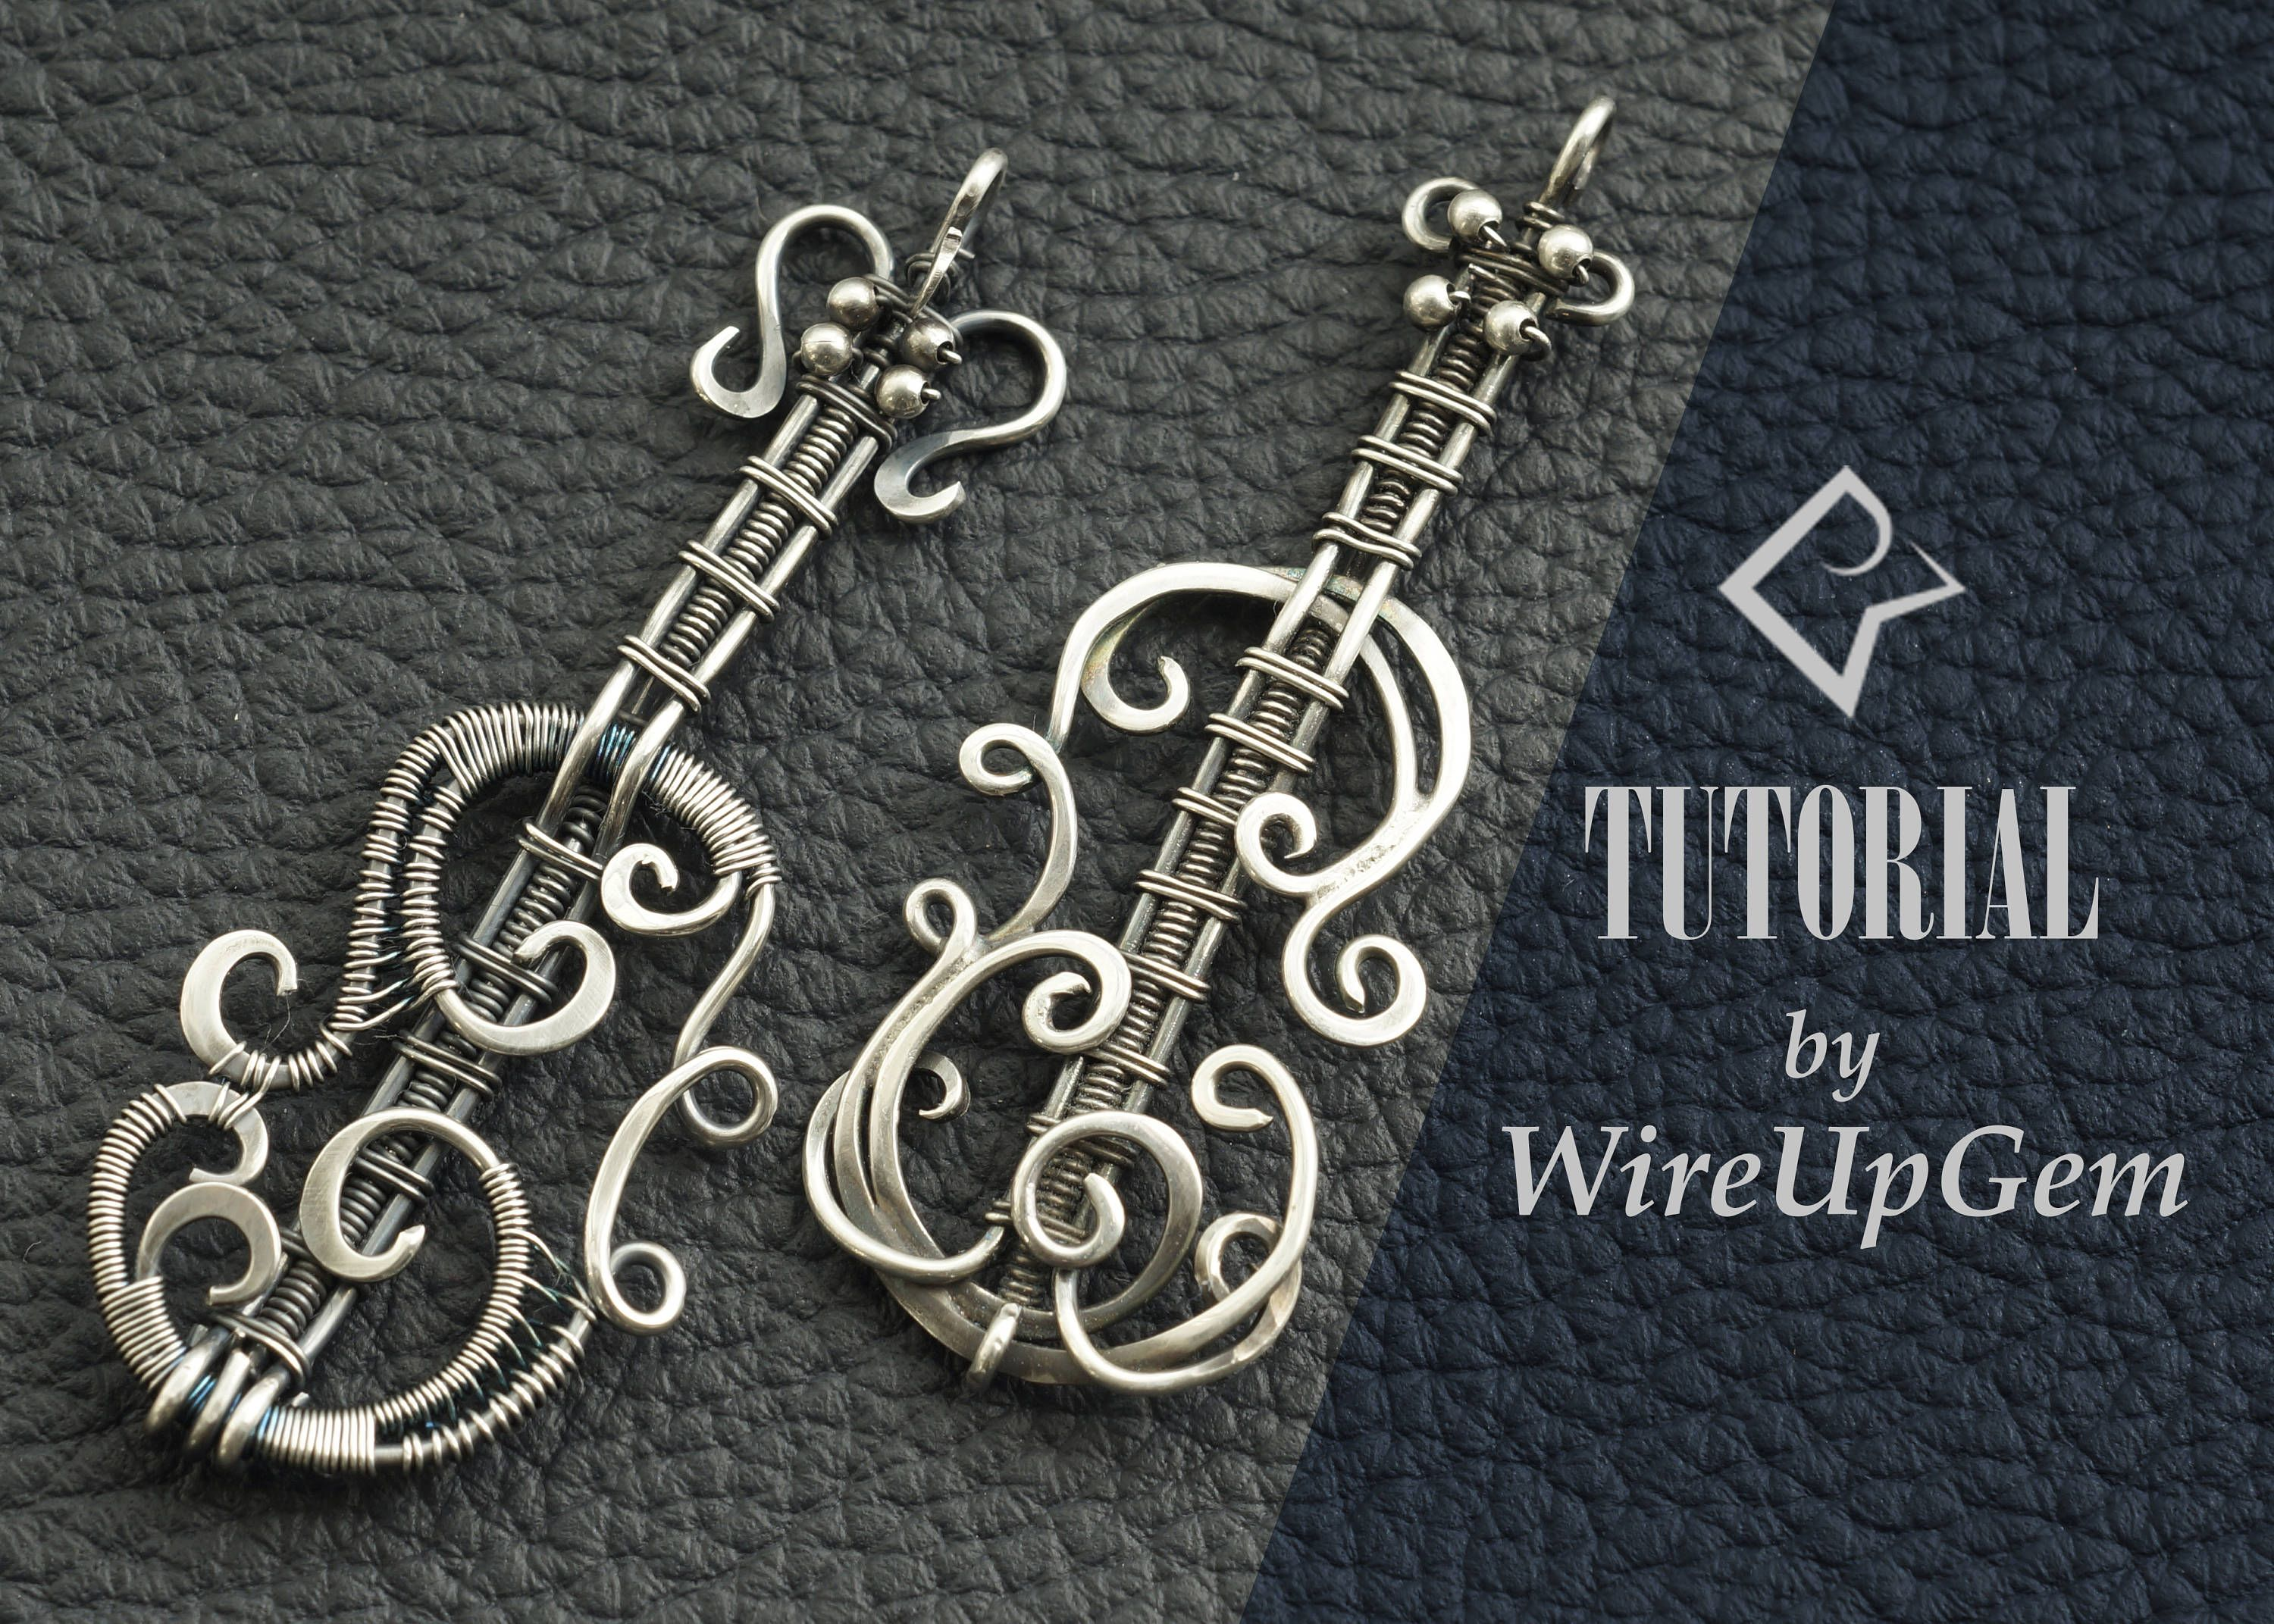 Wire wrap tutorial diy wire wrapping tutorial violin pendant wire wrap tutorial diy wire wrapping tutorial violin pendant with this tutorial you will learn how to make a beautiful violin pendant as shown in the baditri Images